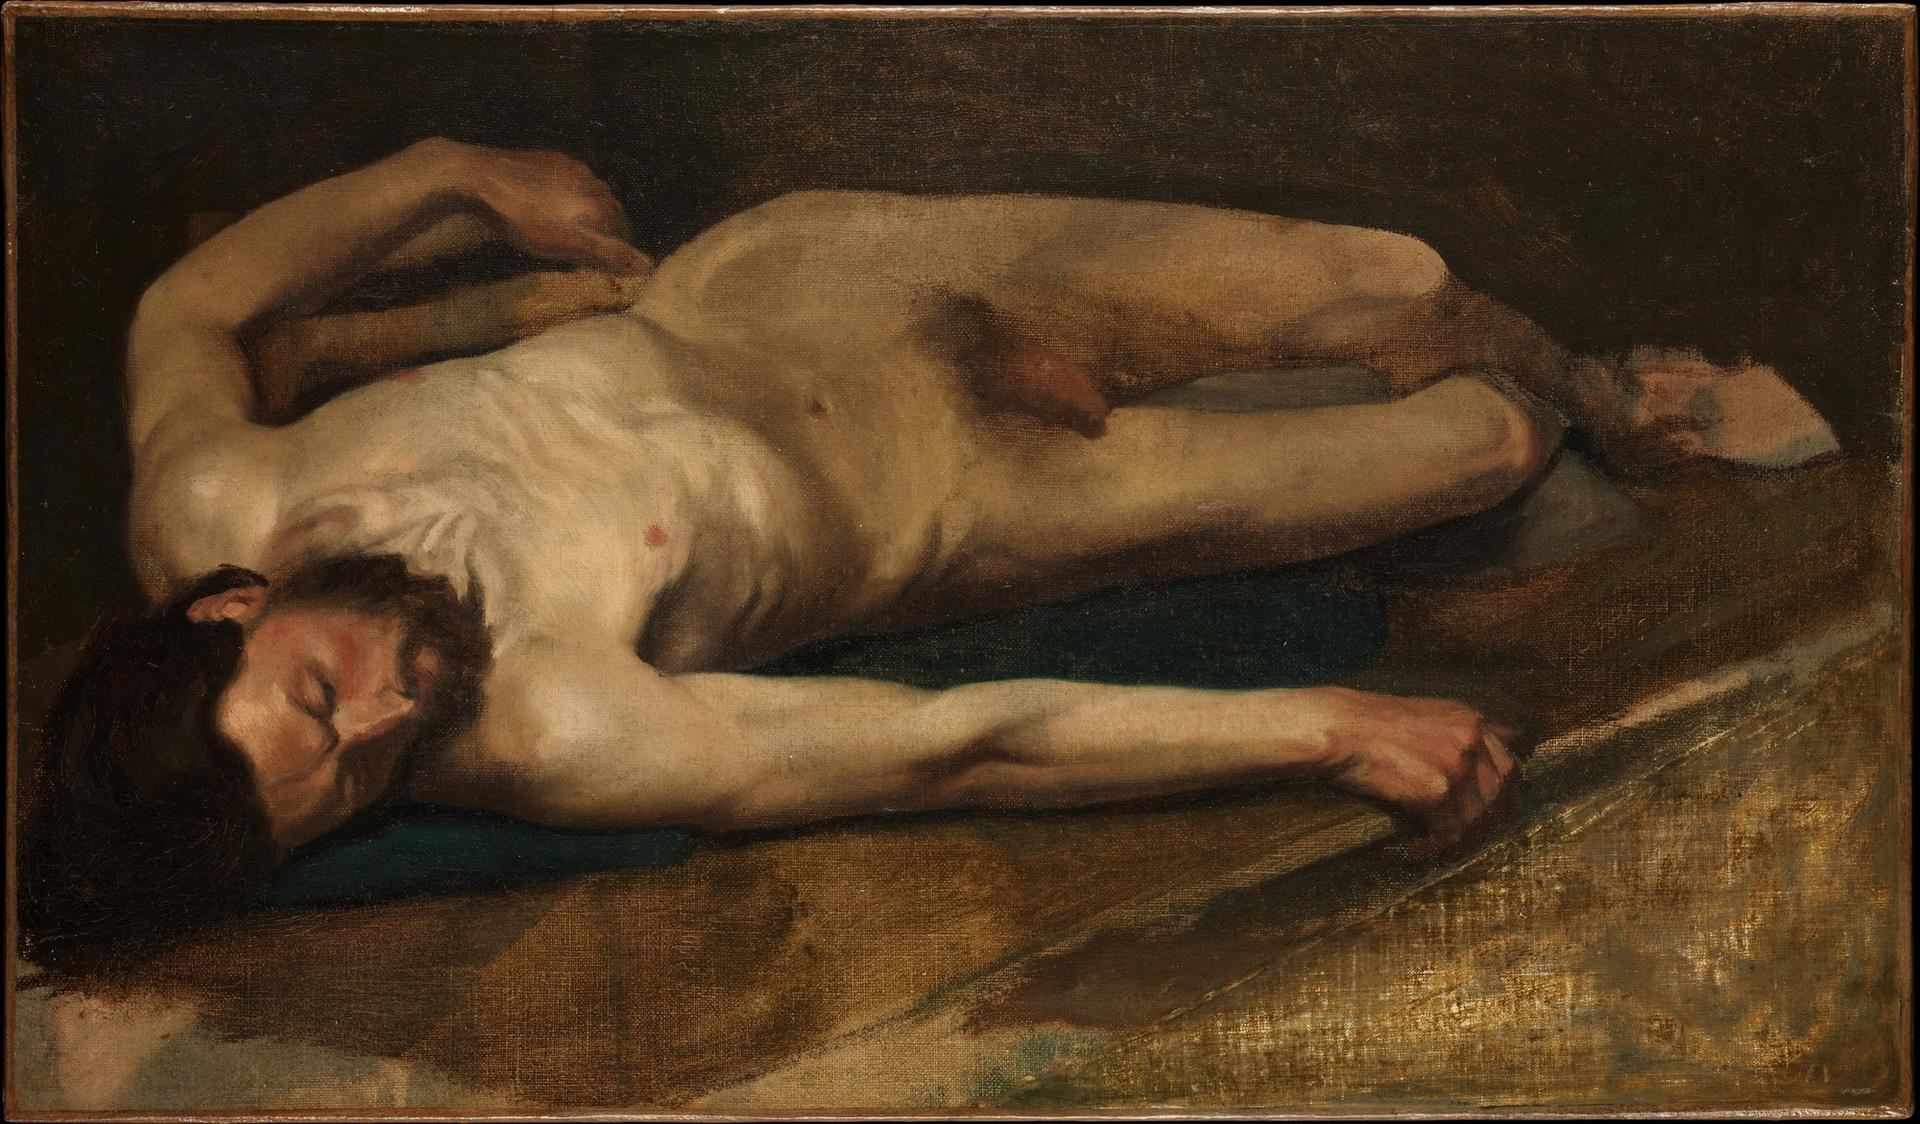 """A pornographic video that is part of Pornhub's """"Classic Nudes"""" online tours was inspired by Edgar Degas's Male Nude (1856)"""